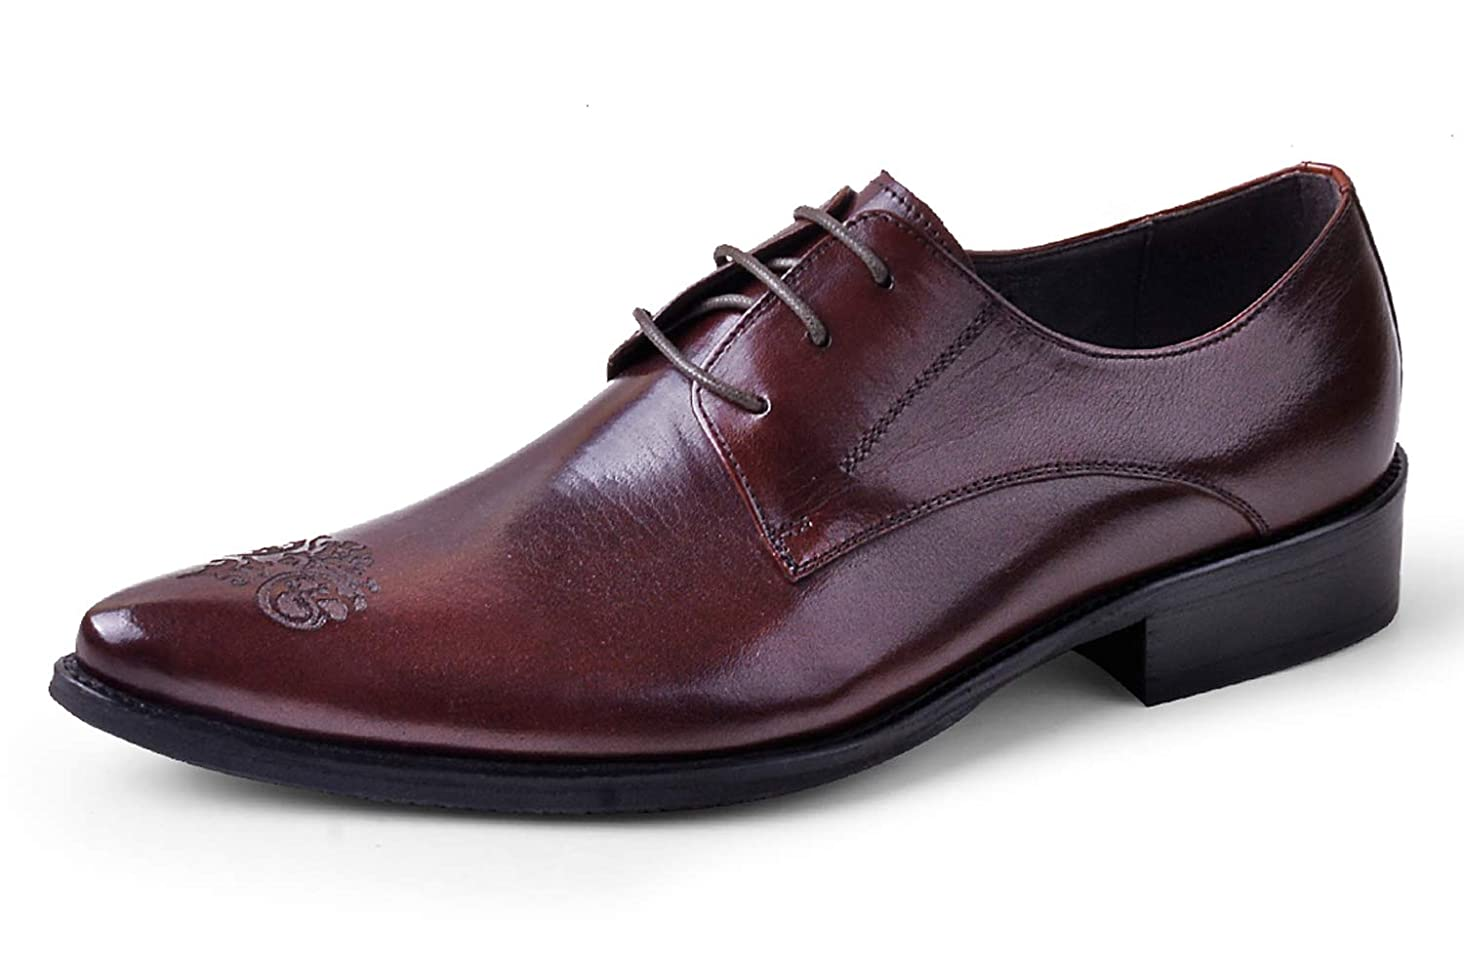 Mens Oxford Dress Shoes Fashion Formal Handmade Carved Plain Toe Leather Lace Up Derby Shoes